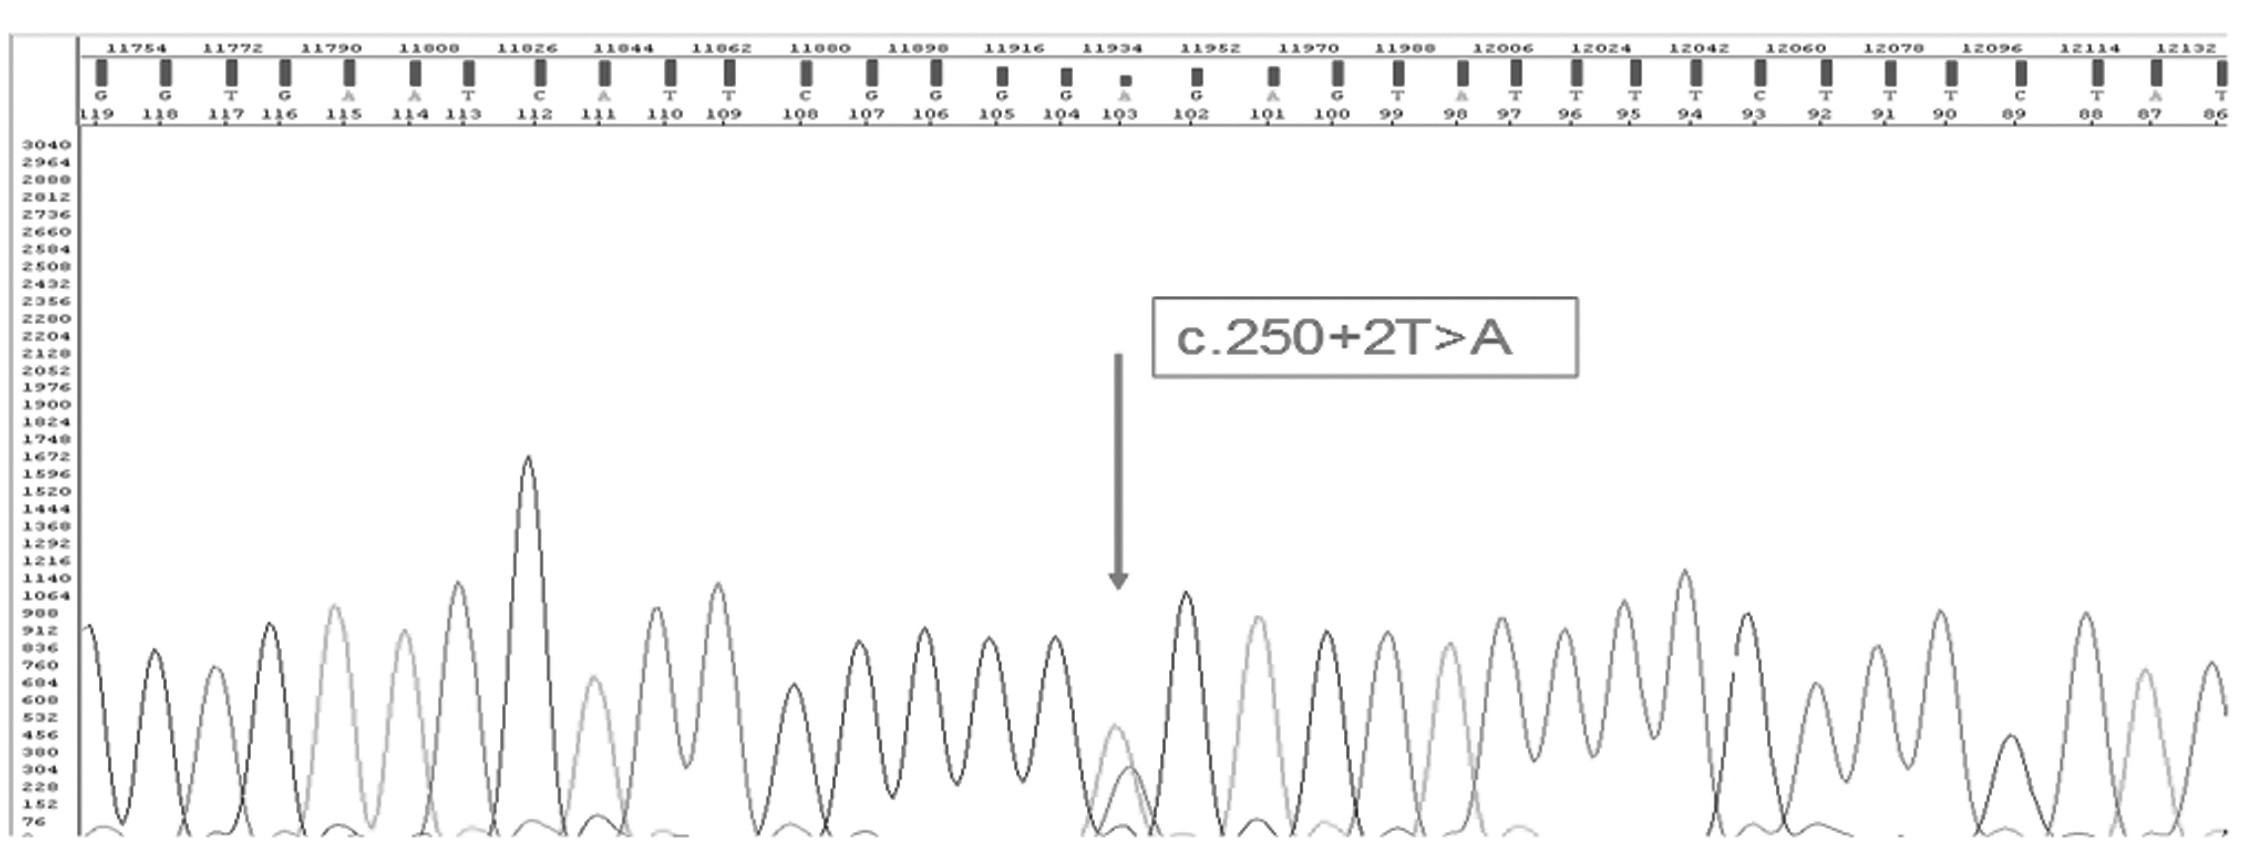 Fig. 5. Sequencing analysis of the intron/exon 24 with point mutation - substitution of the nucleotides (arrow).